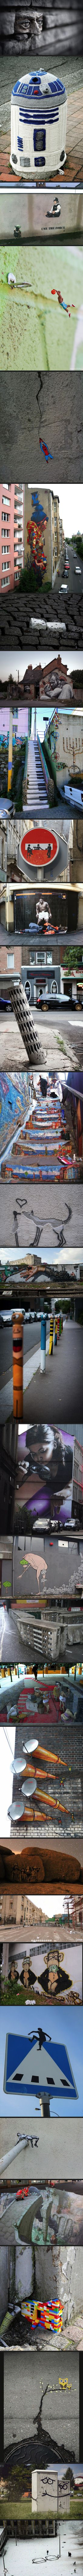 Awesome street art collection